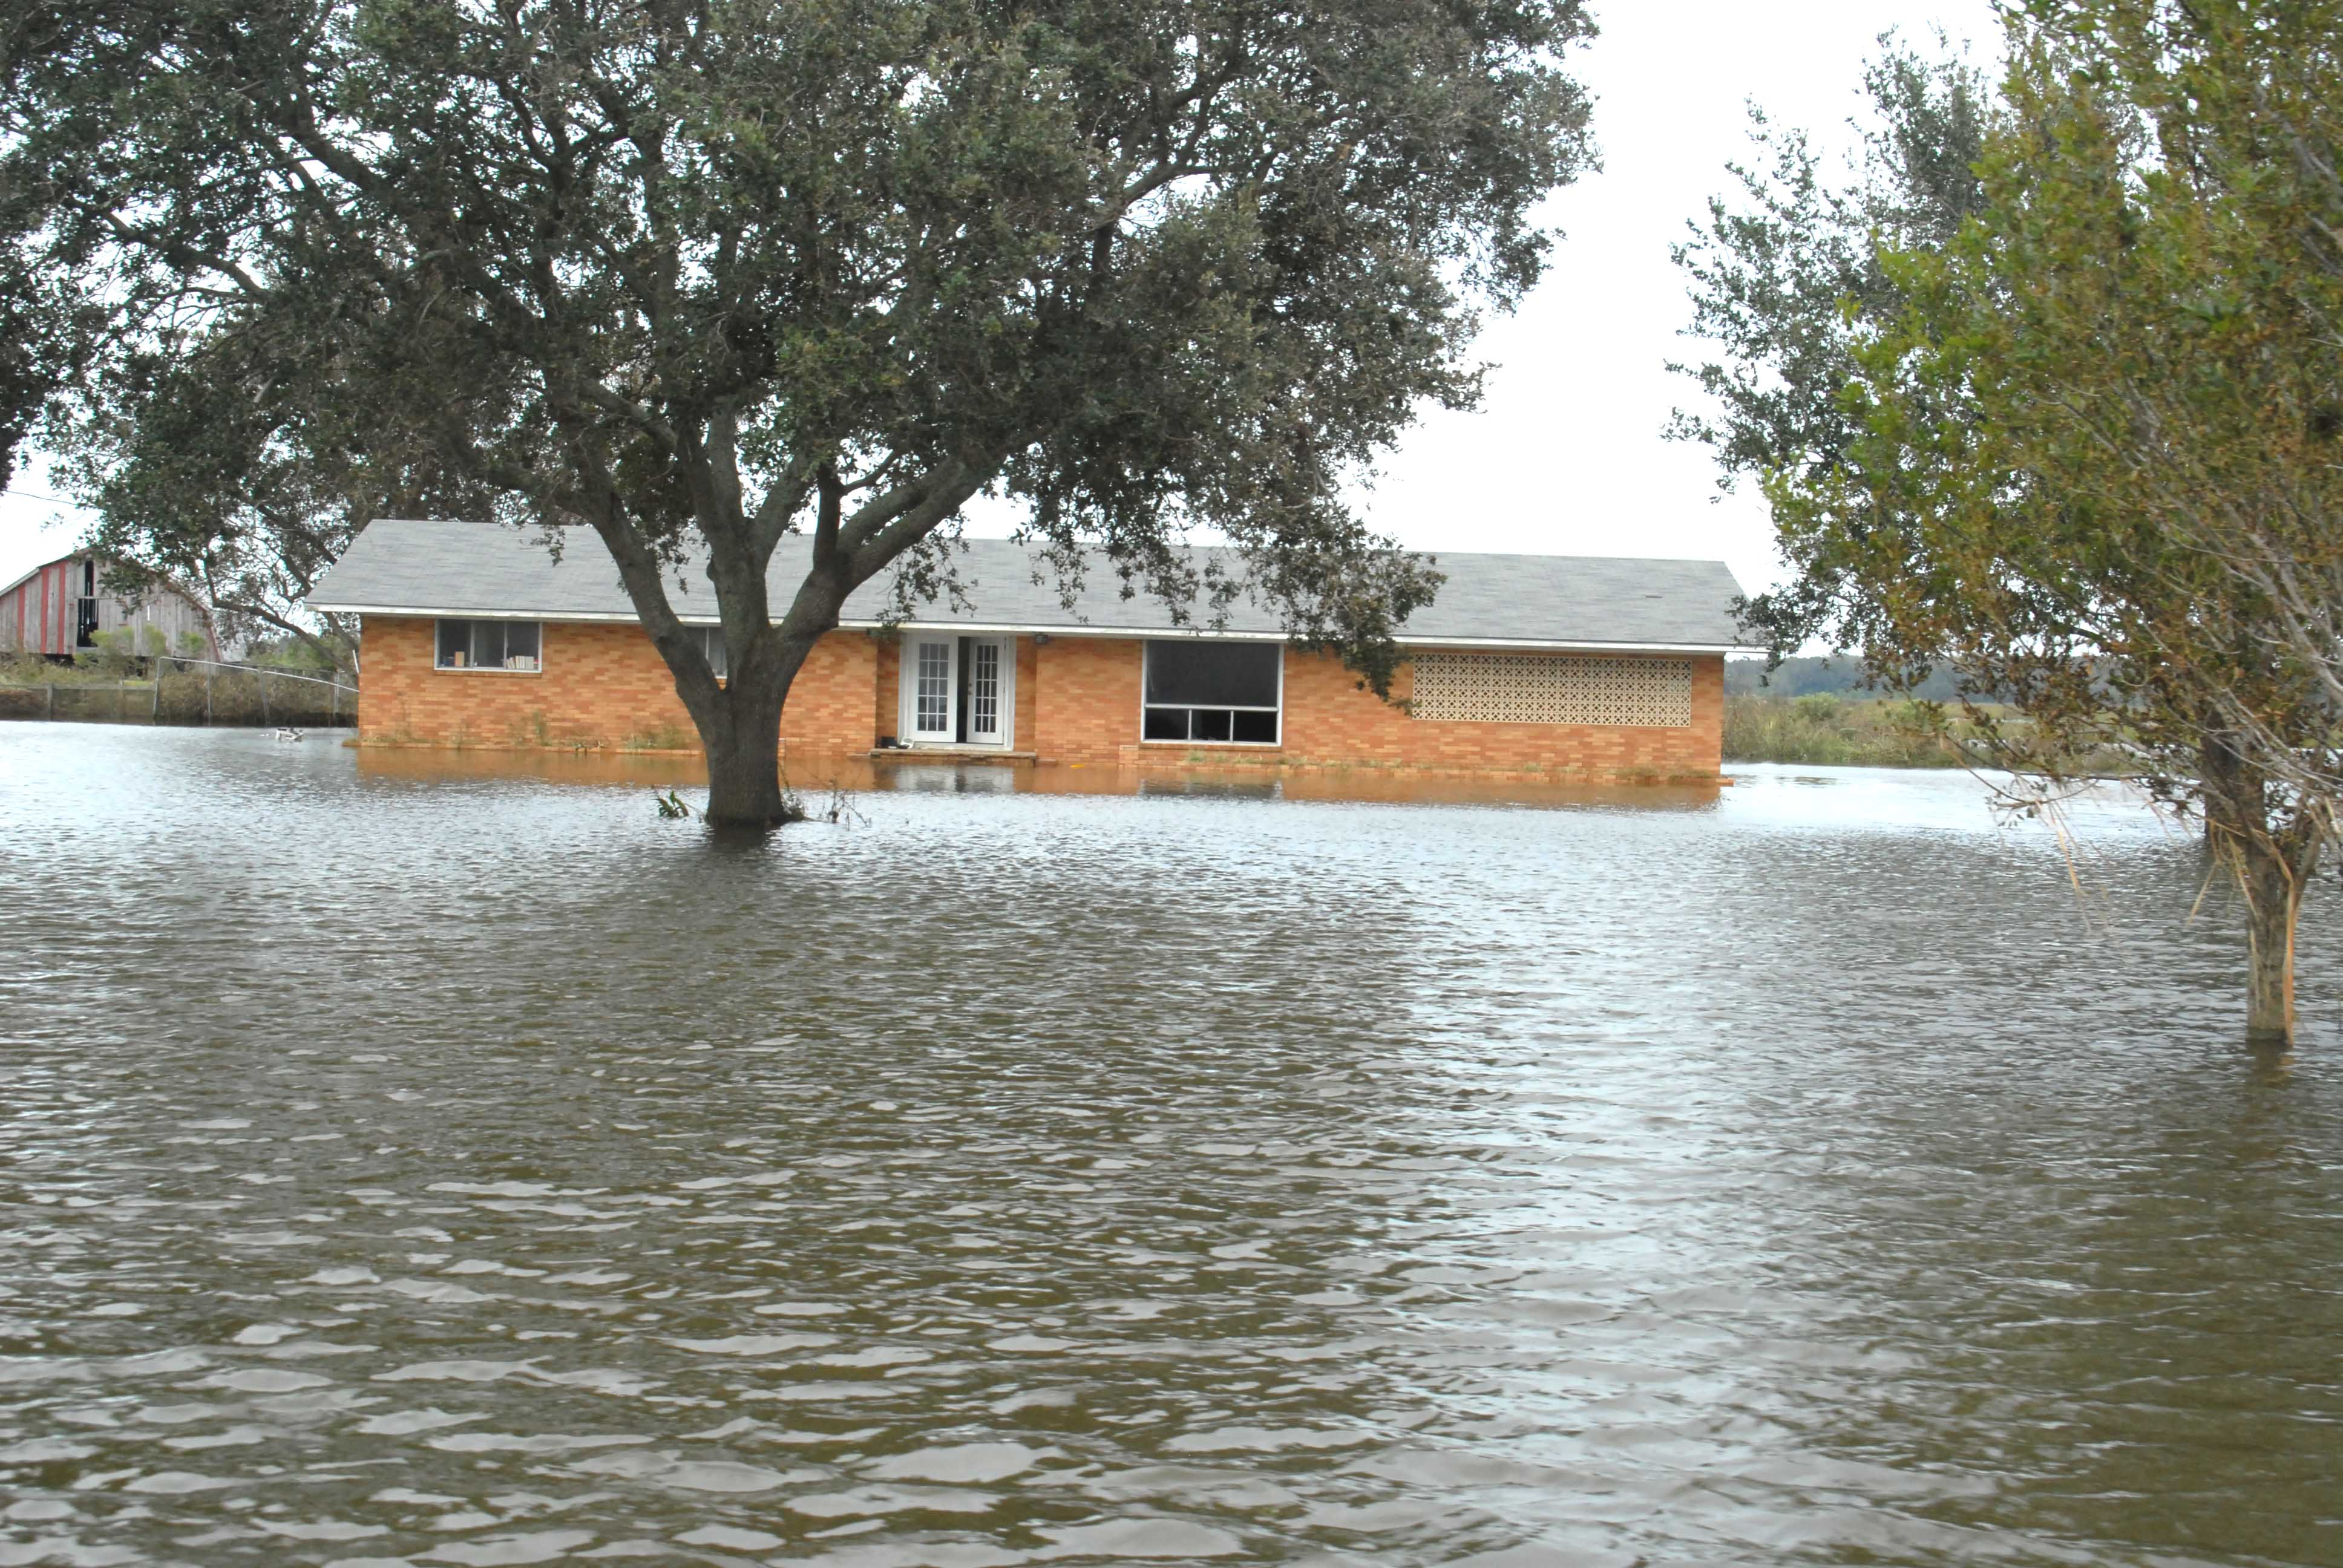 Flood risk awareness to be discussed at Slidell fair